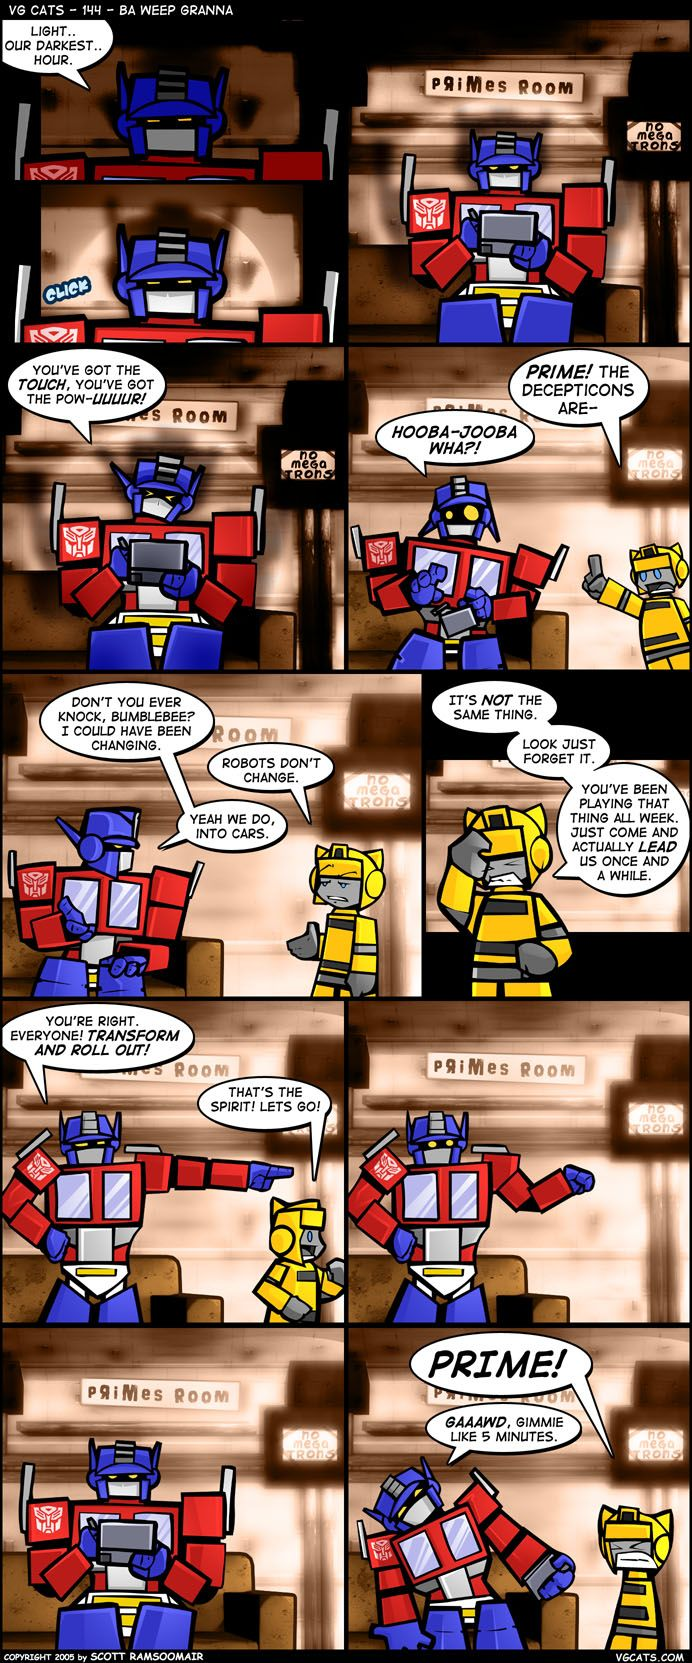 Hilarious TF pics - Page 17 - TFW2005 - The 2005 Boards lol